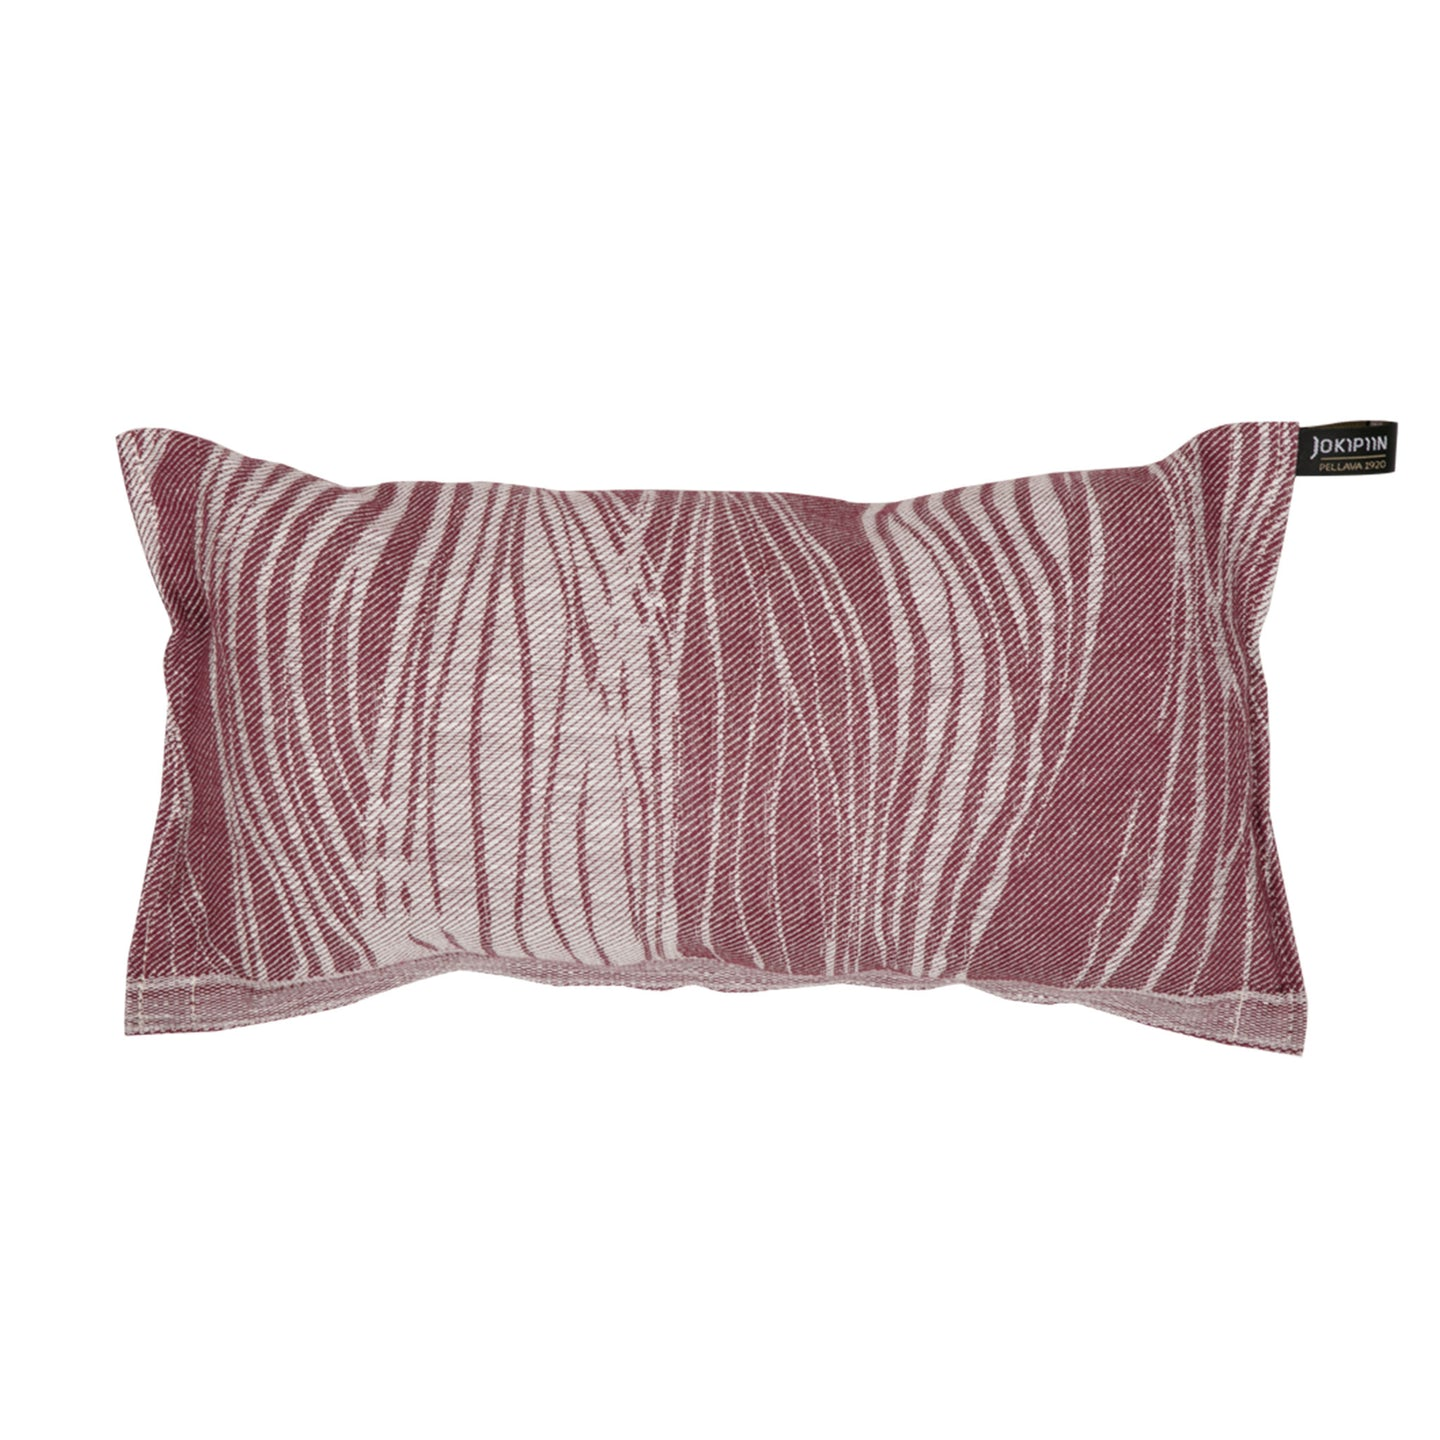 Sauna Pillow Virta by Jokipiin Pellava White / Plum  Sauna Pillow Finnmark Sauna